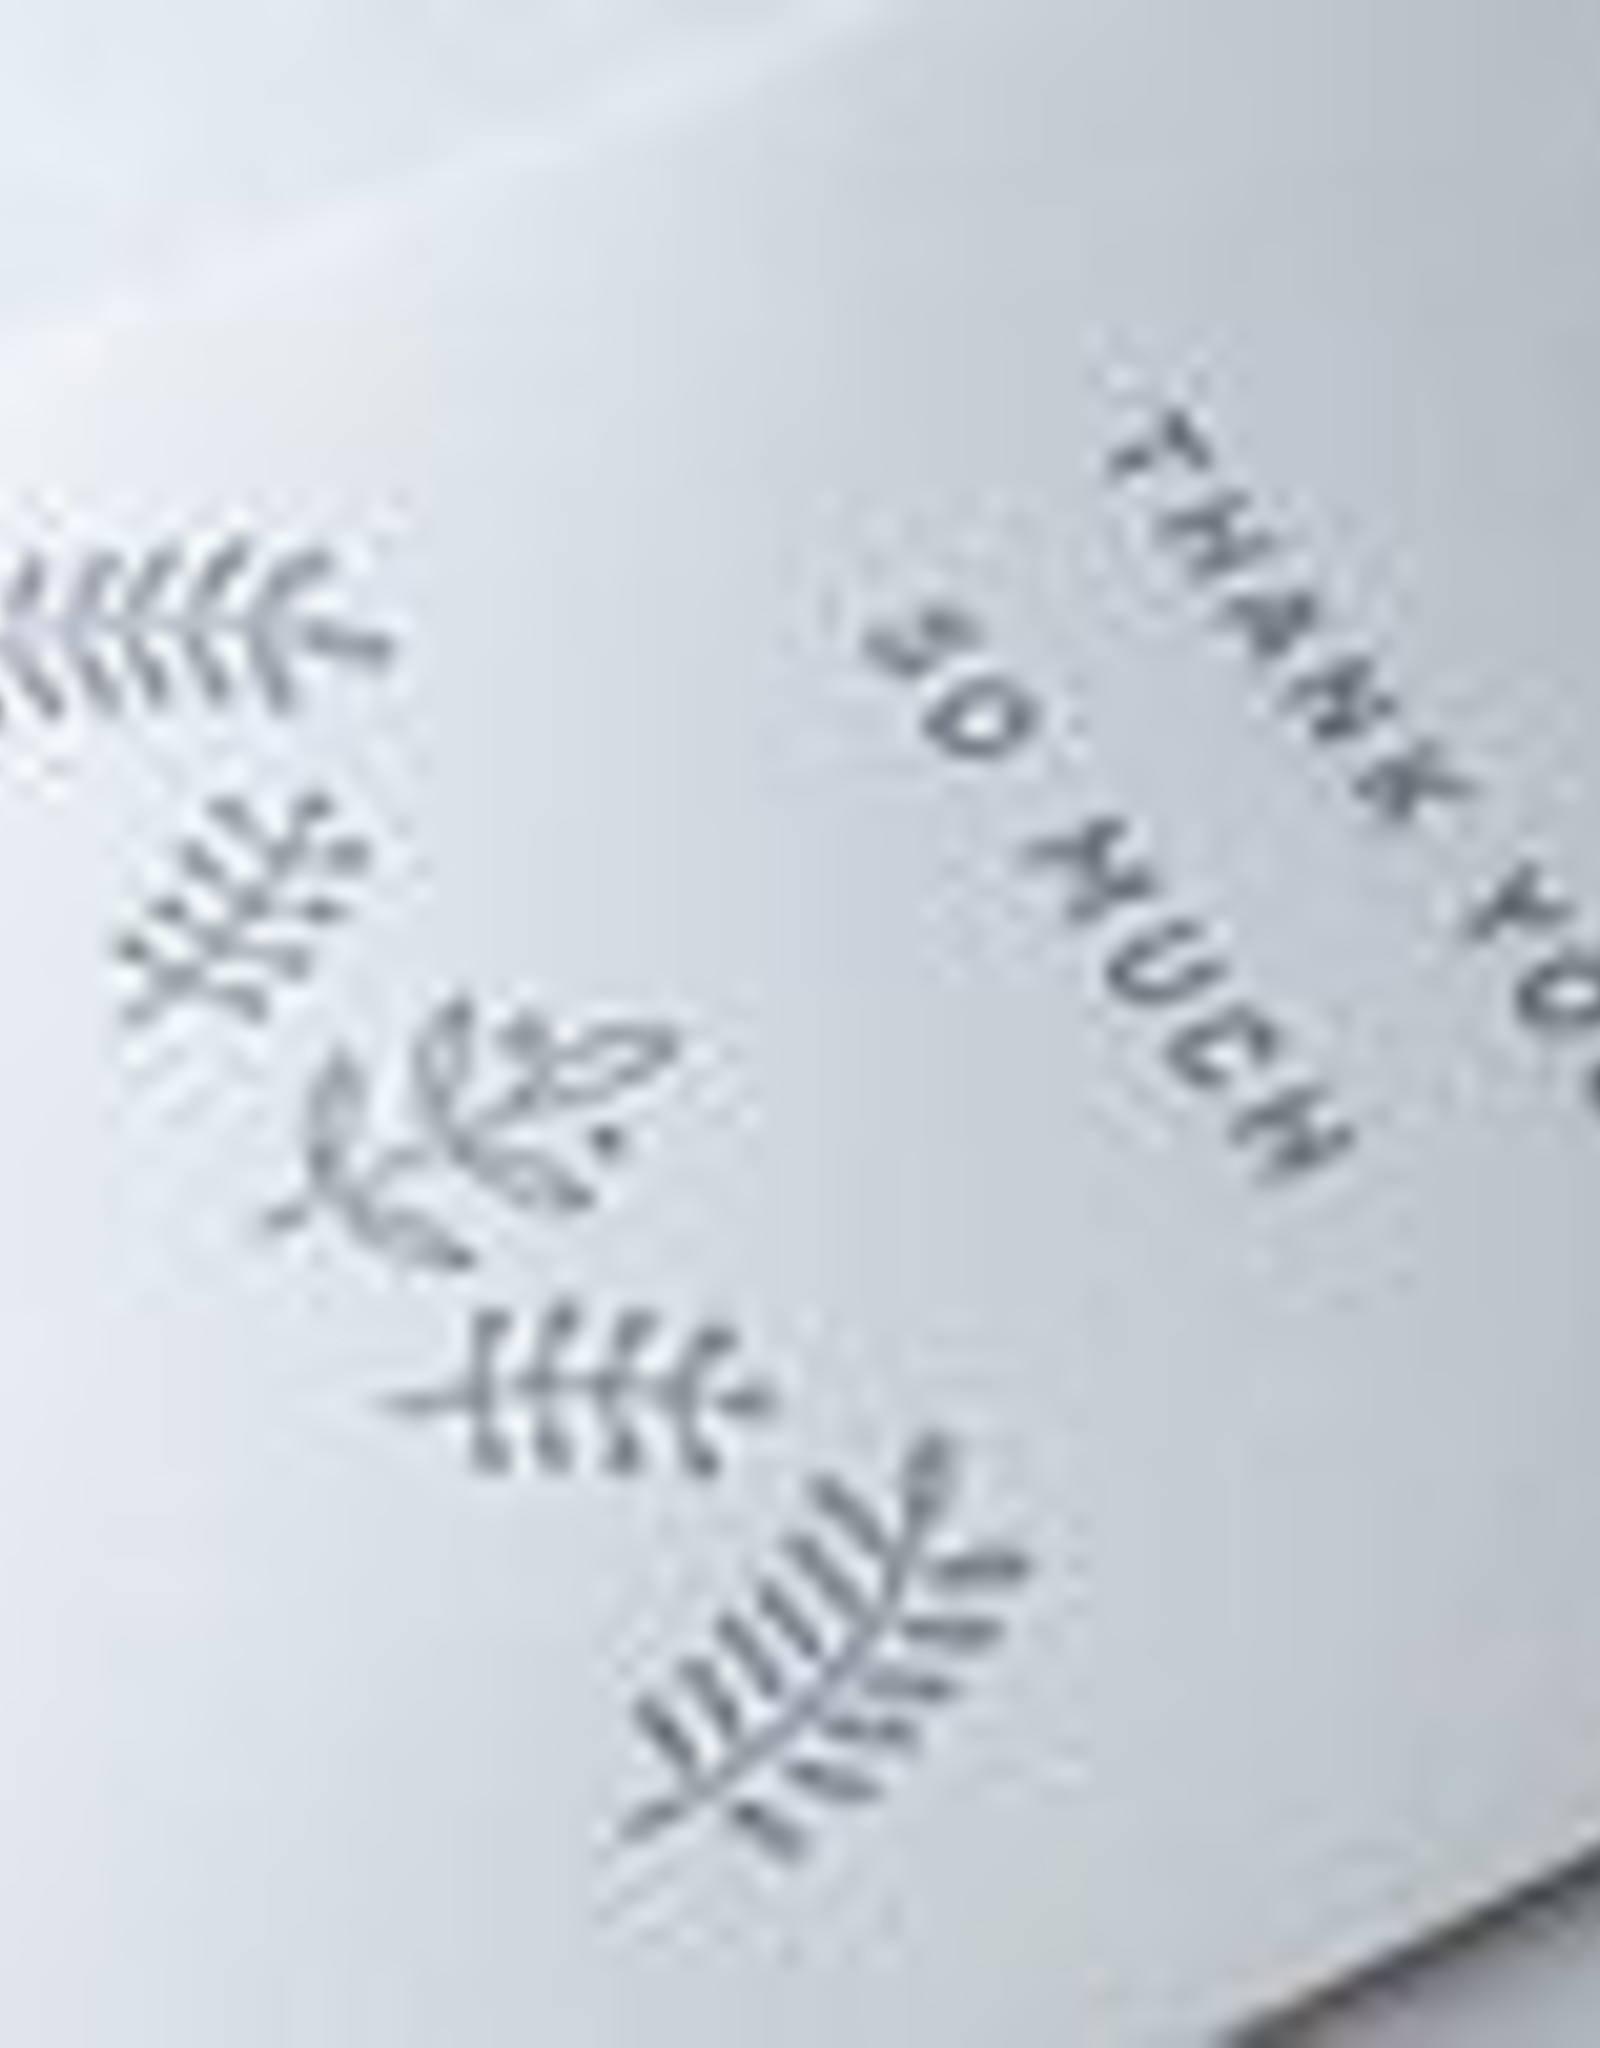 The Pear in Paper Letterpress - Thank you so much